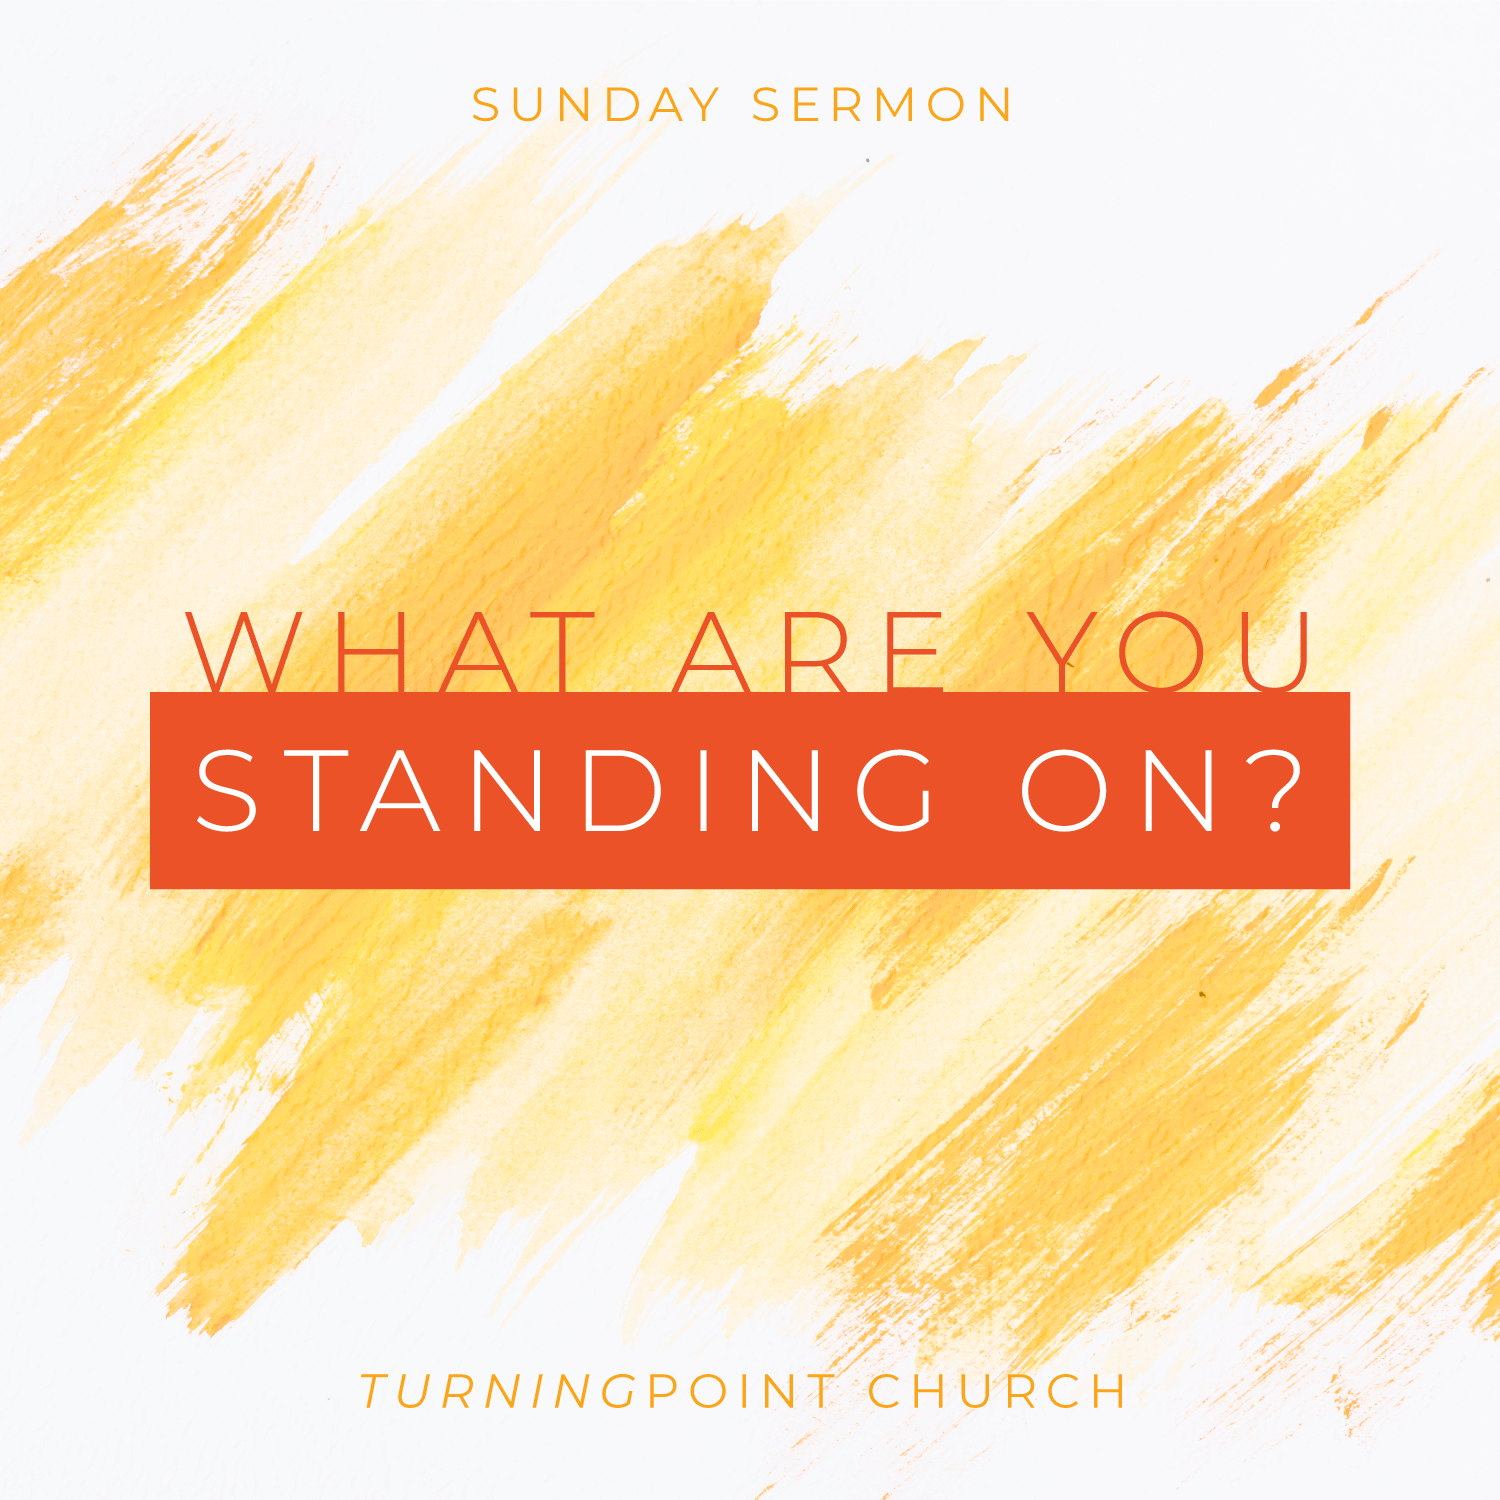 00(M036) - What Are You Standing On?-1